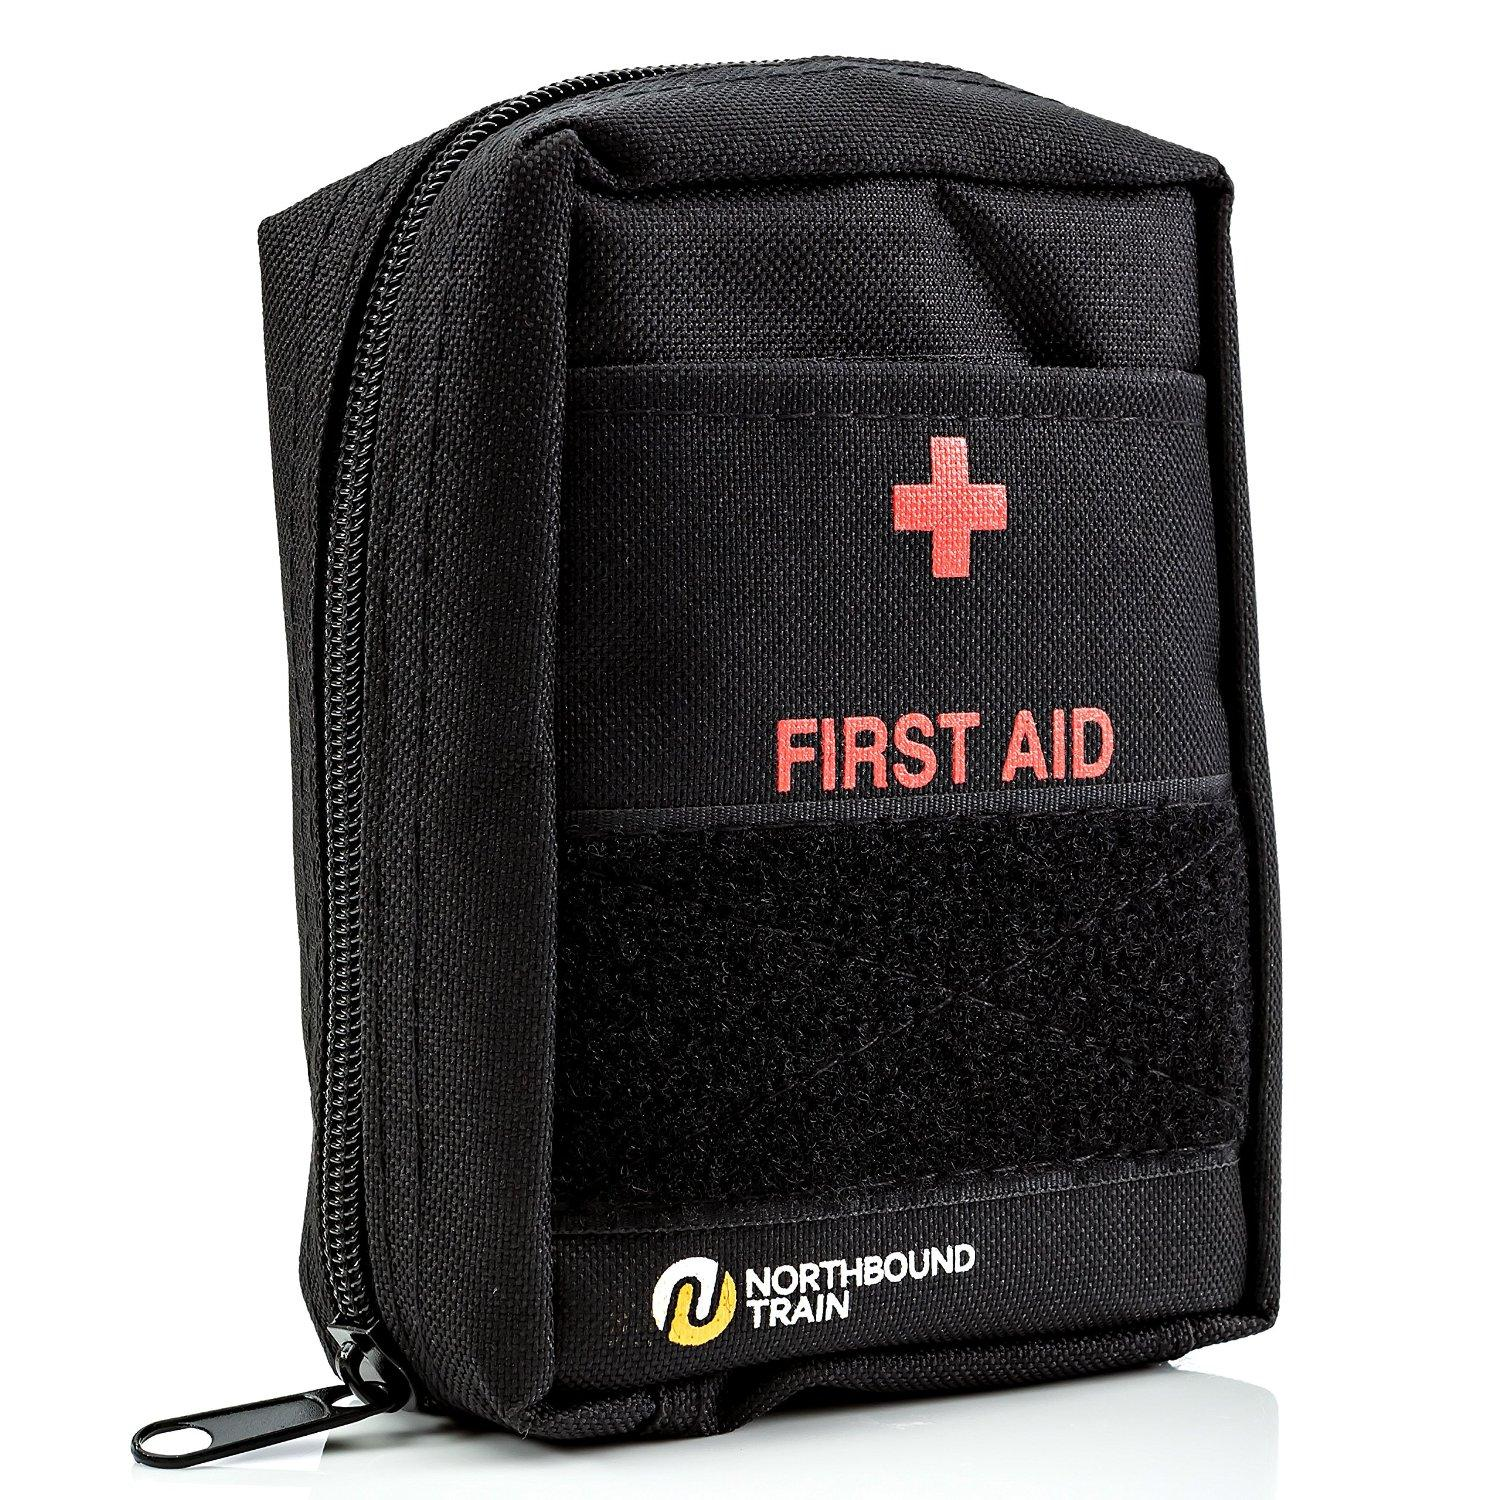 First Aid Kit for Car, Home, Camping, Hiking, and Survival